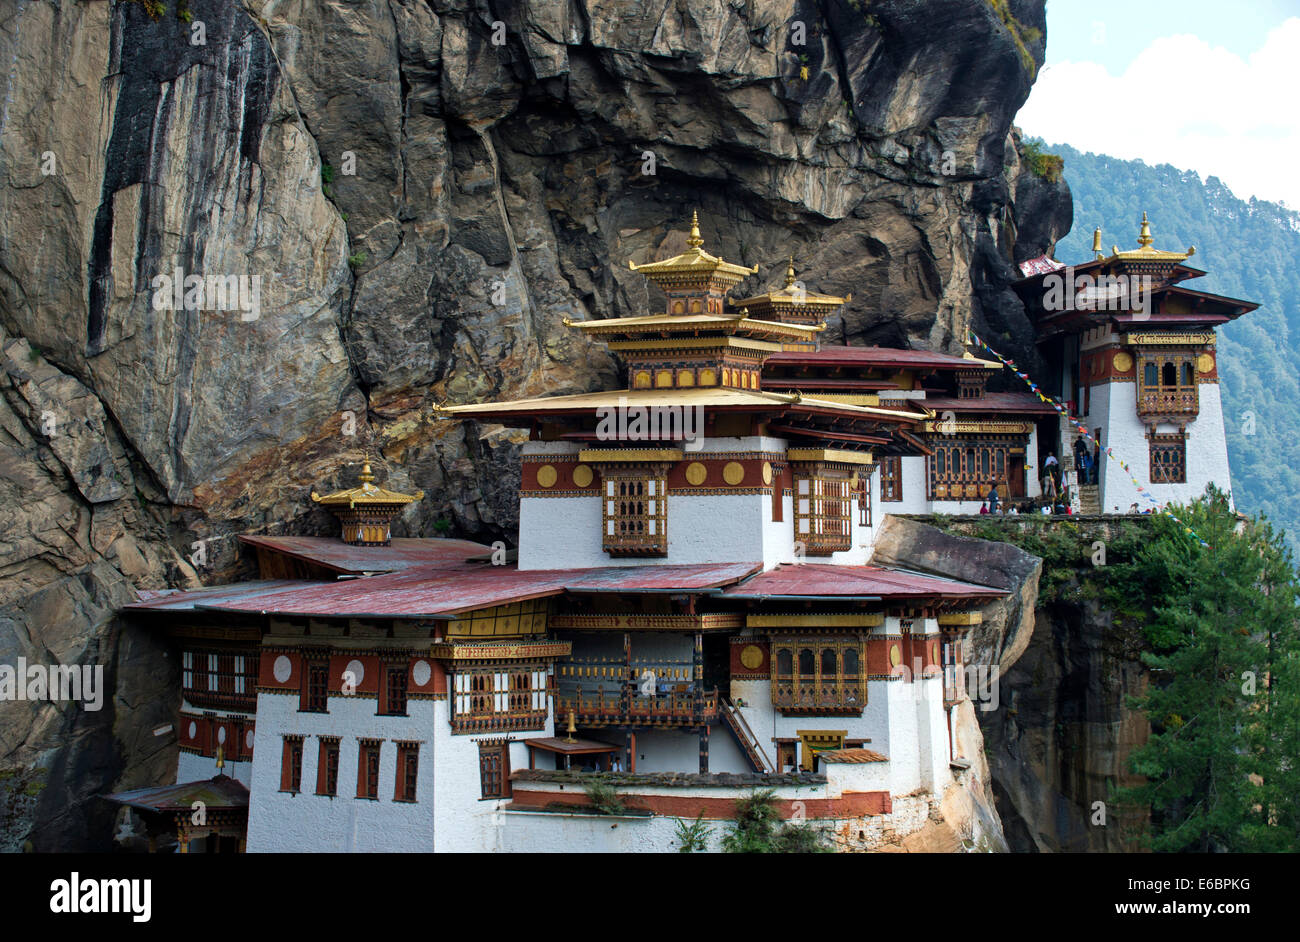 Tiger's Nest Monastery, Taktsang Monastery, Paro district, Bhutan - Stock Image